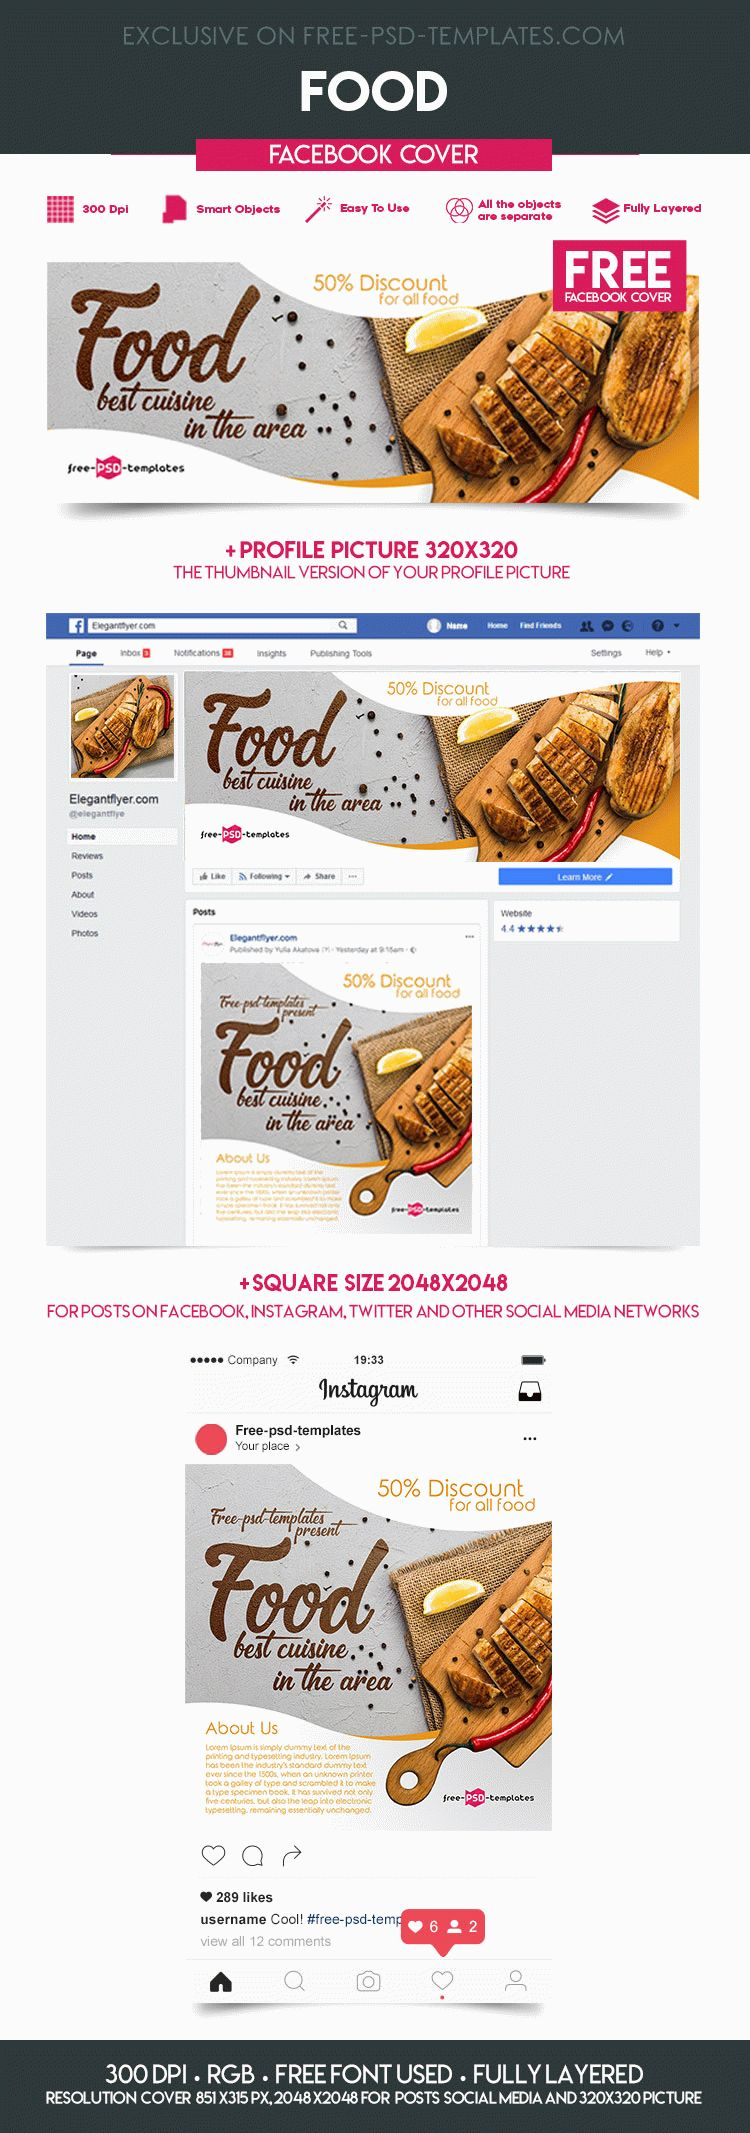 free food facebook cover free psd templates